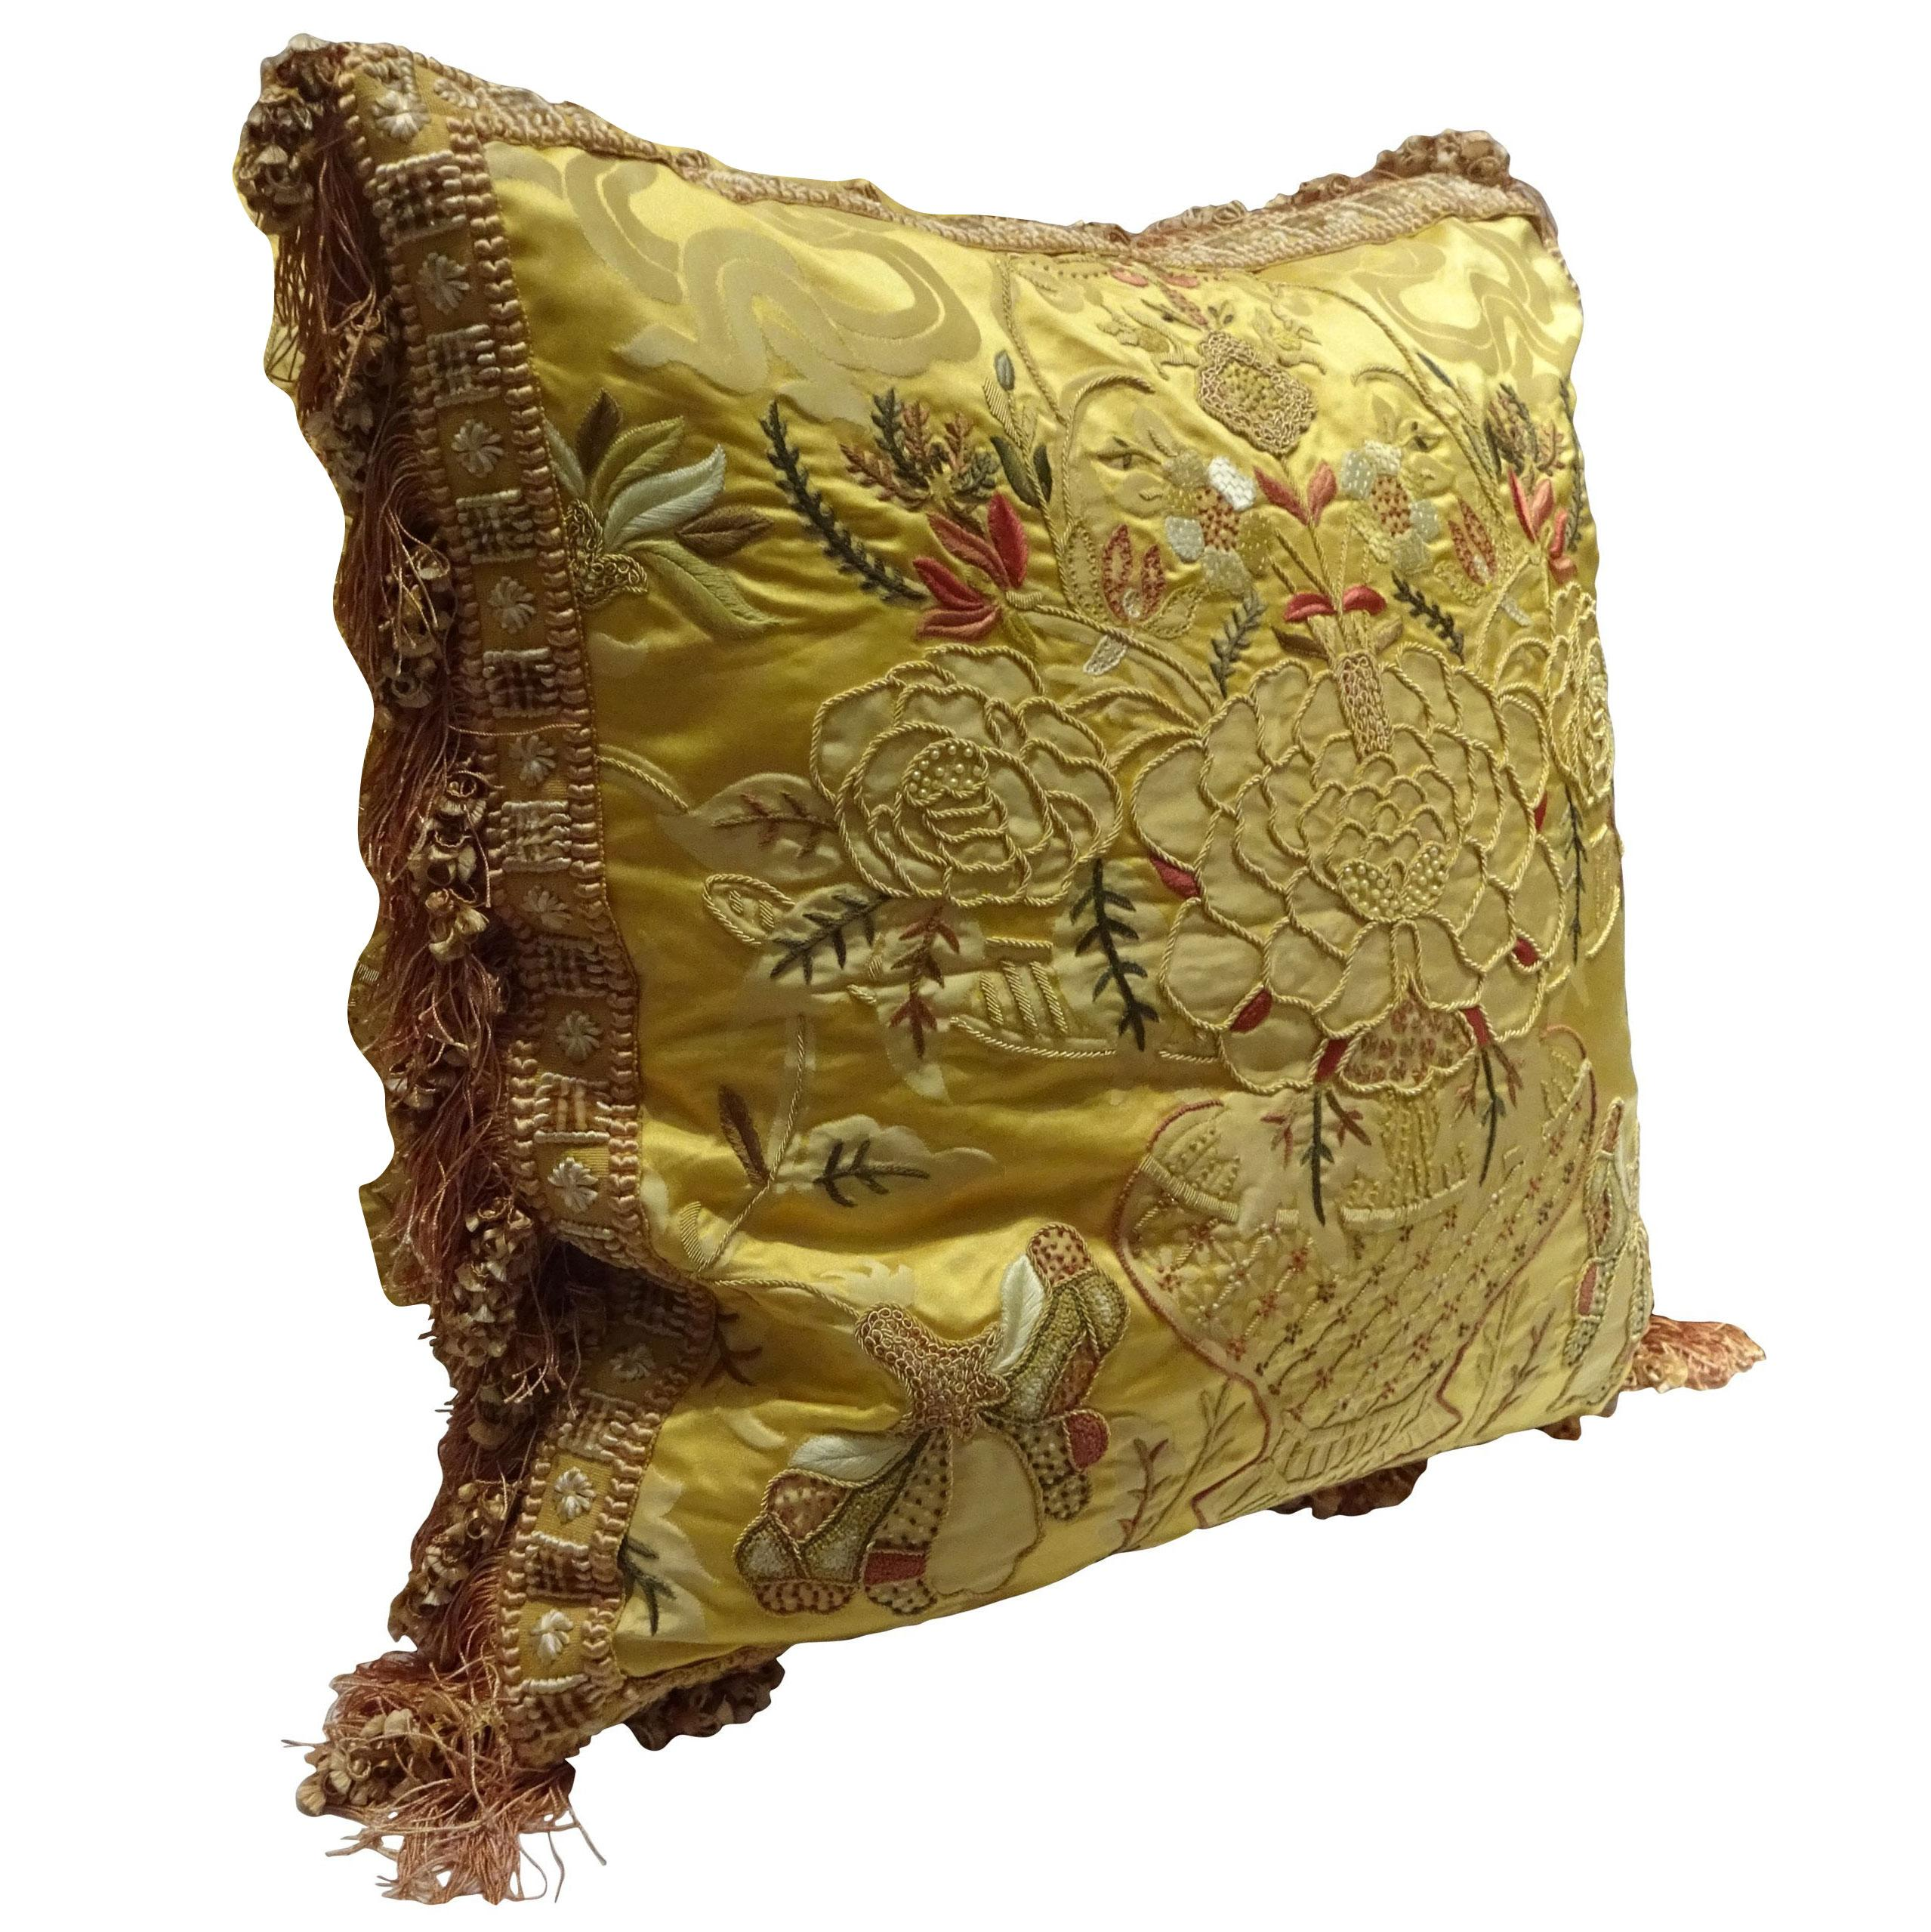 Exquisite Embroidered Pillow, Scalamandre Fabric